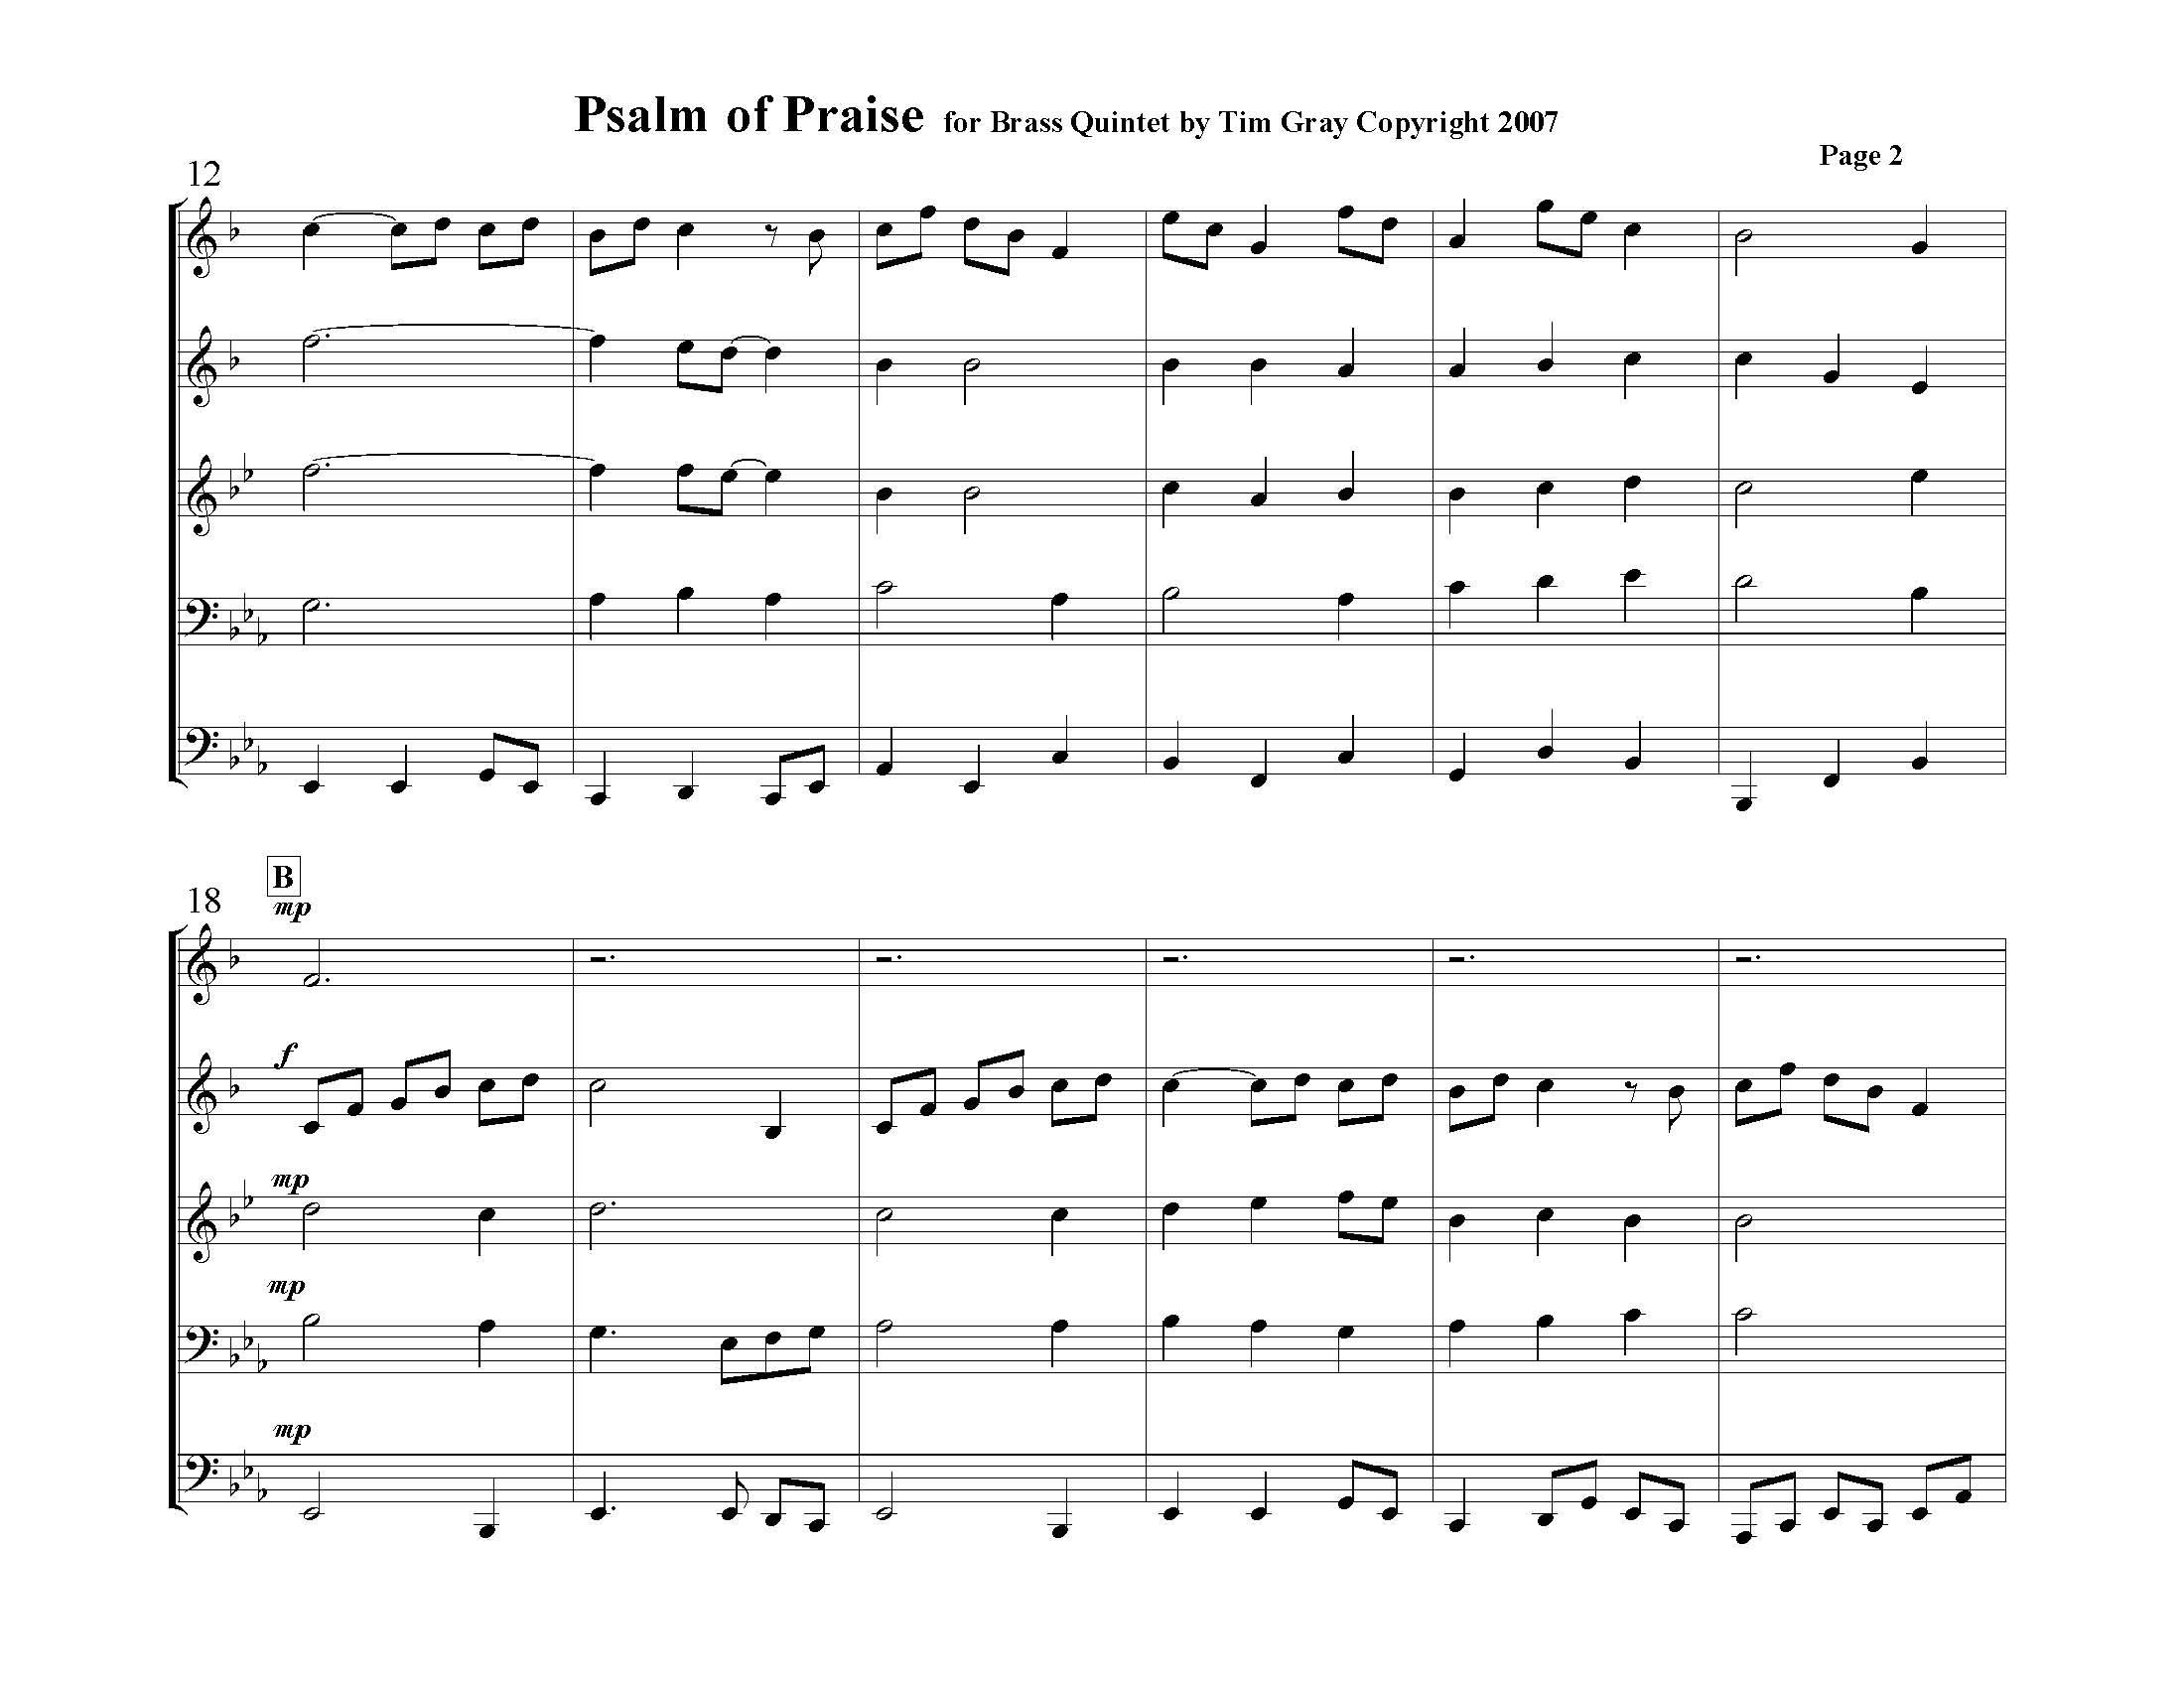 Psalm of Praise Brass Quintet sample page 2 at HonoringGodMusic.com